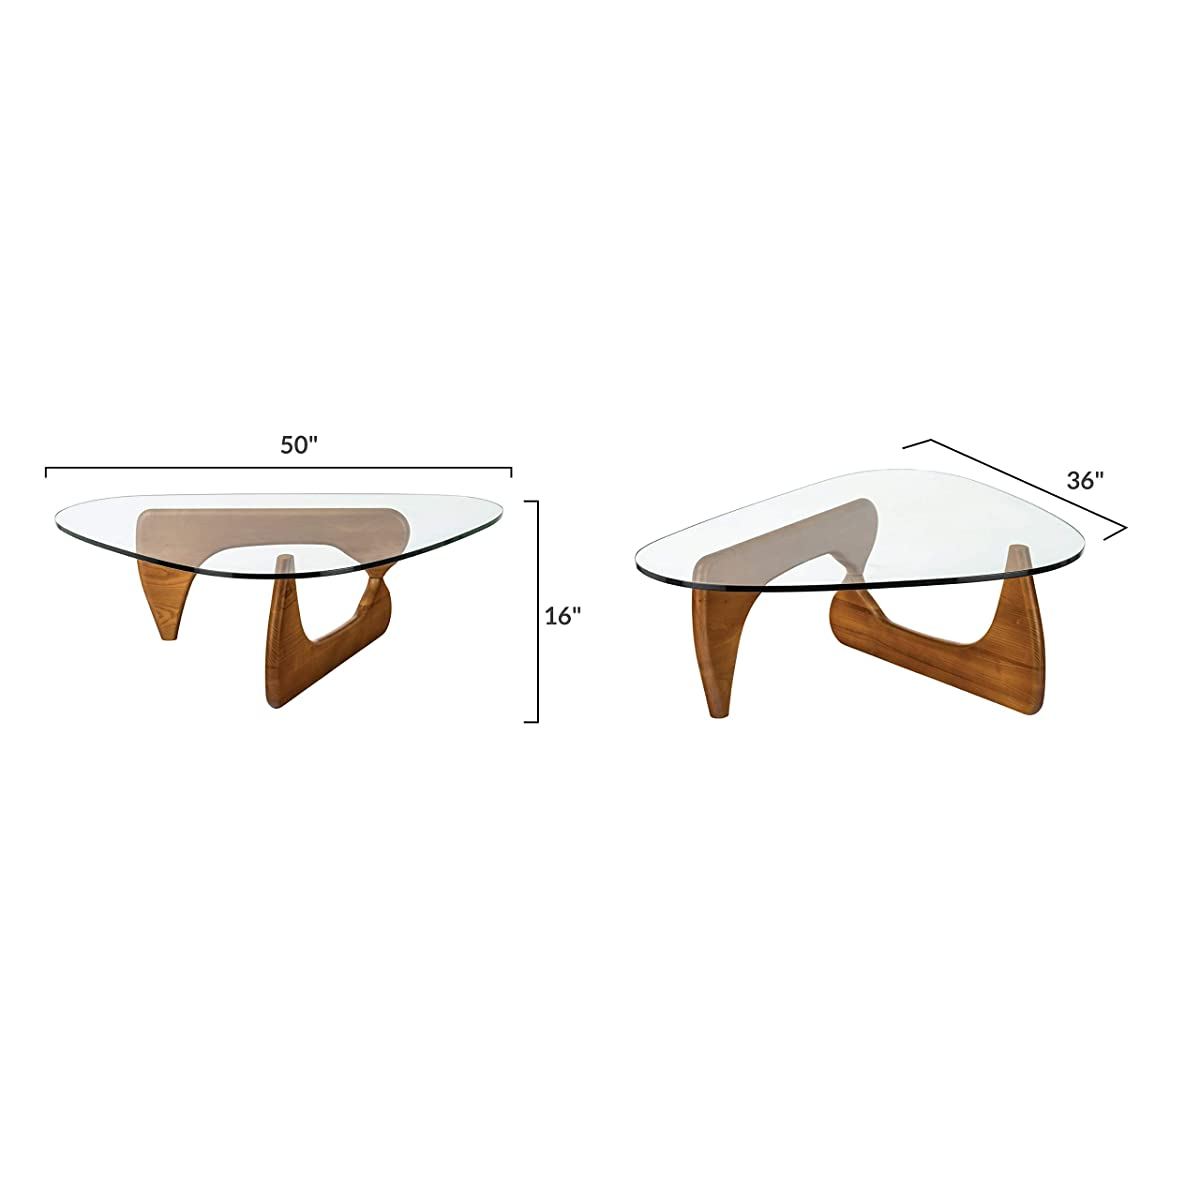 Poly and Bark Sculpture Coffee Table